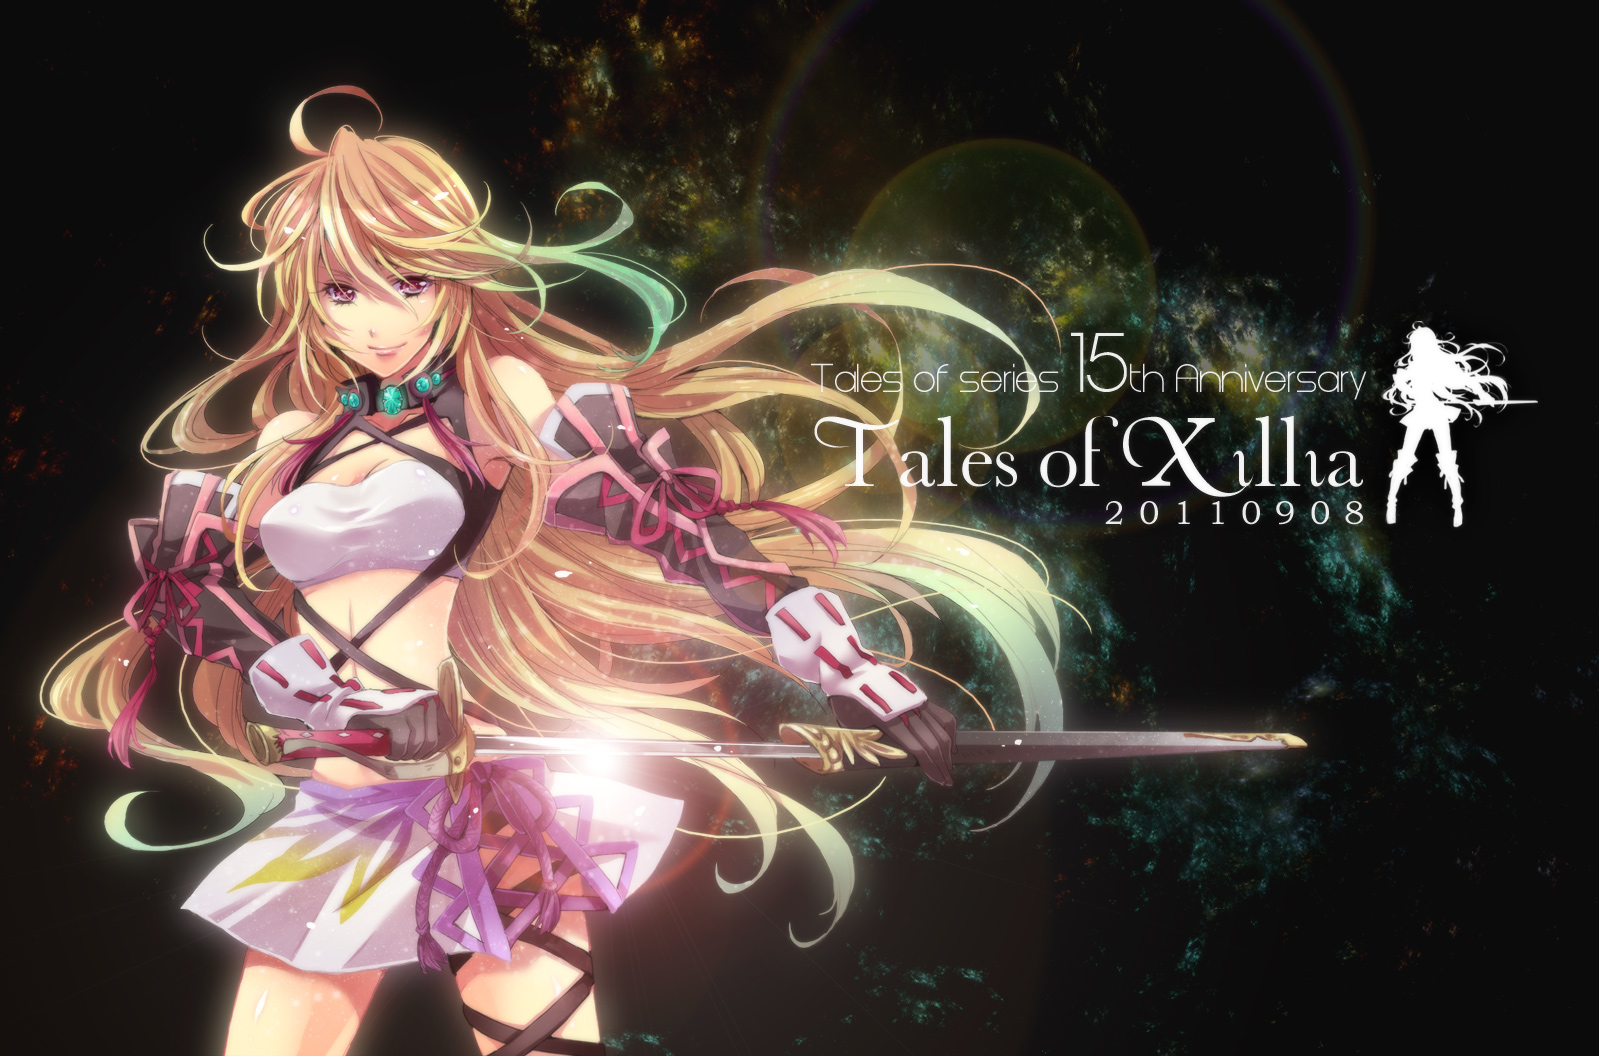 Tales of Xillia Anniversary Wallpaper